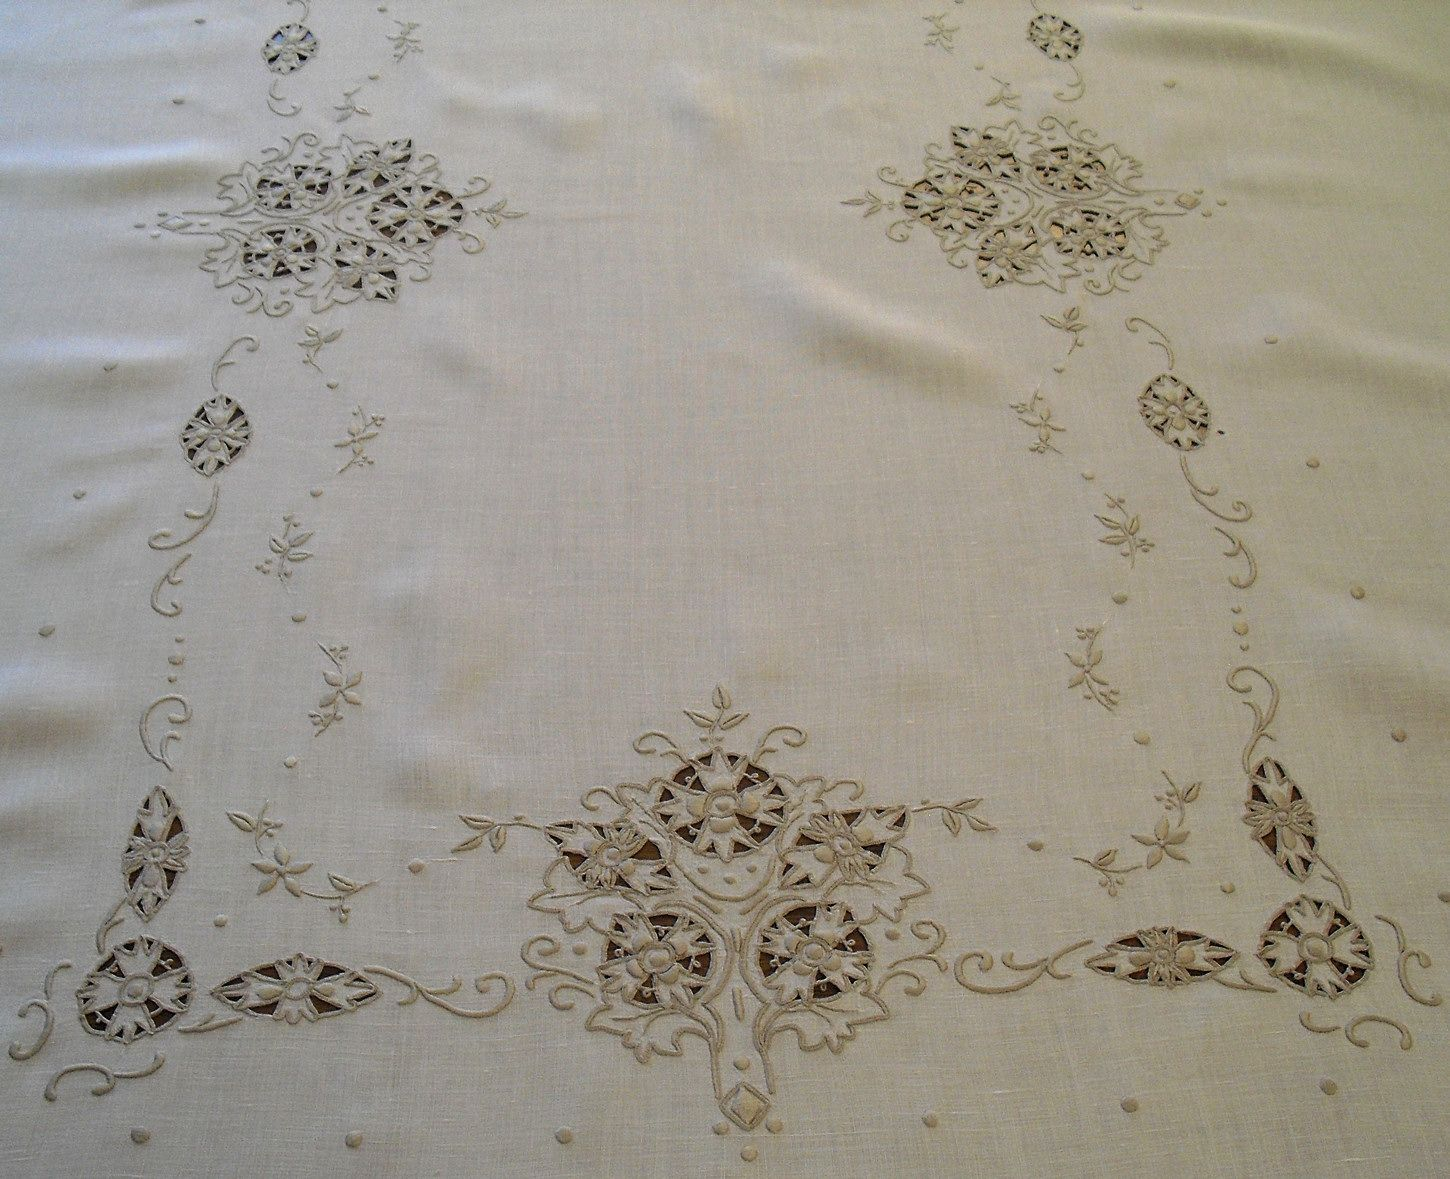 Antique Italian Linens | Vintage Italian Linen Embroidered Cutwork Needle Lace  Tablecloth 69x86 .